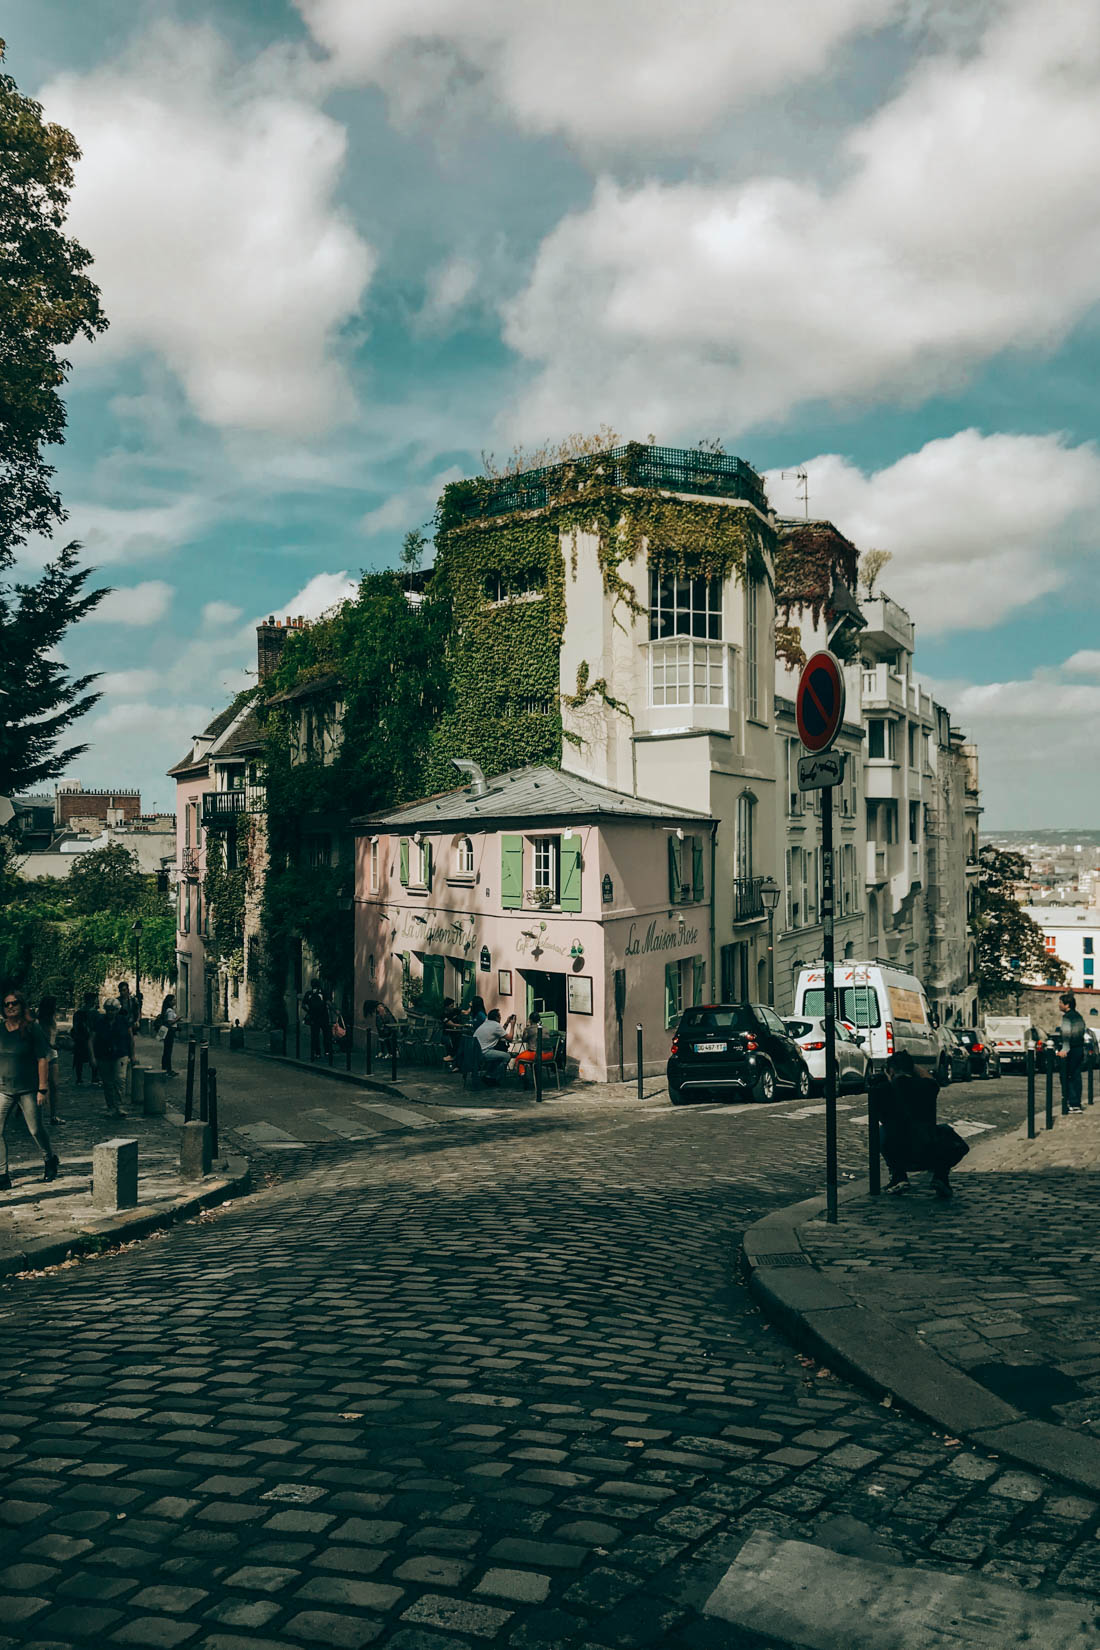 The Prettiest Morning in Montmartre (Paris)